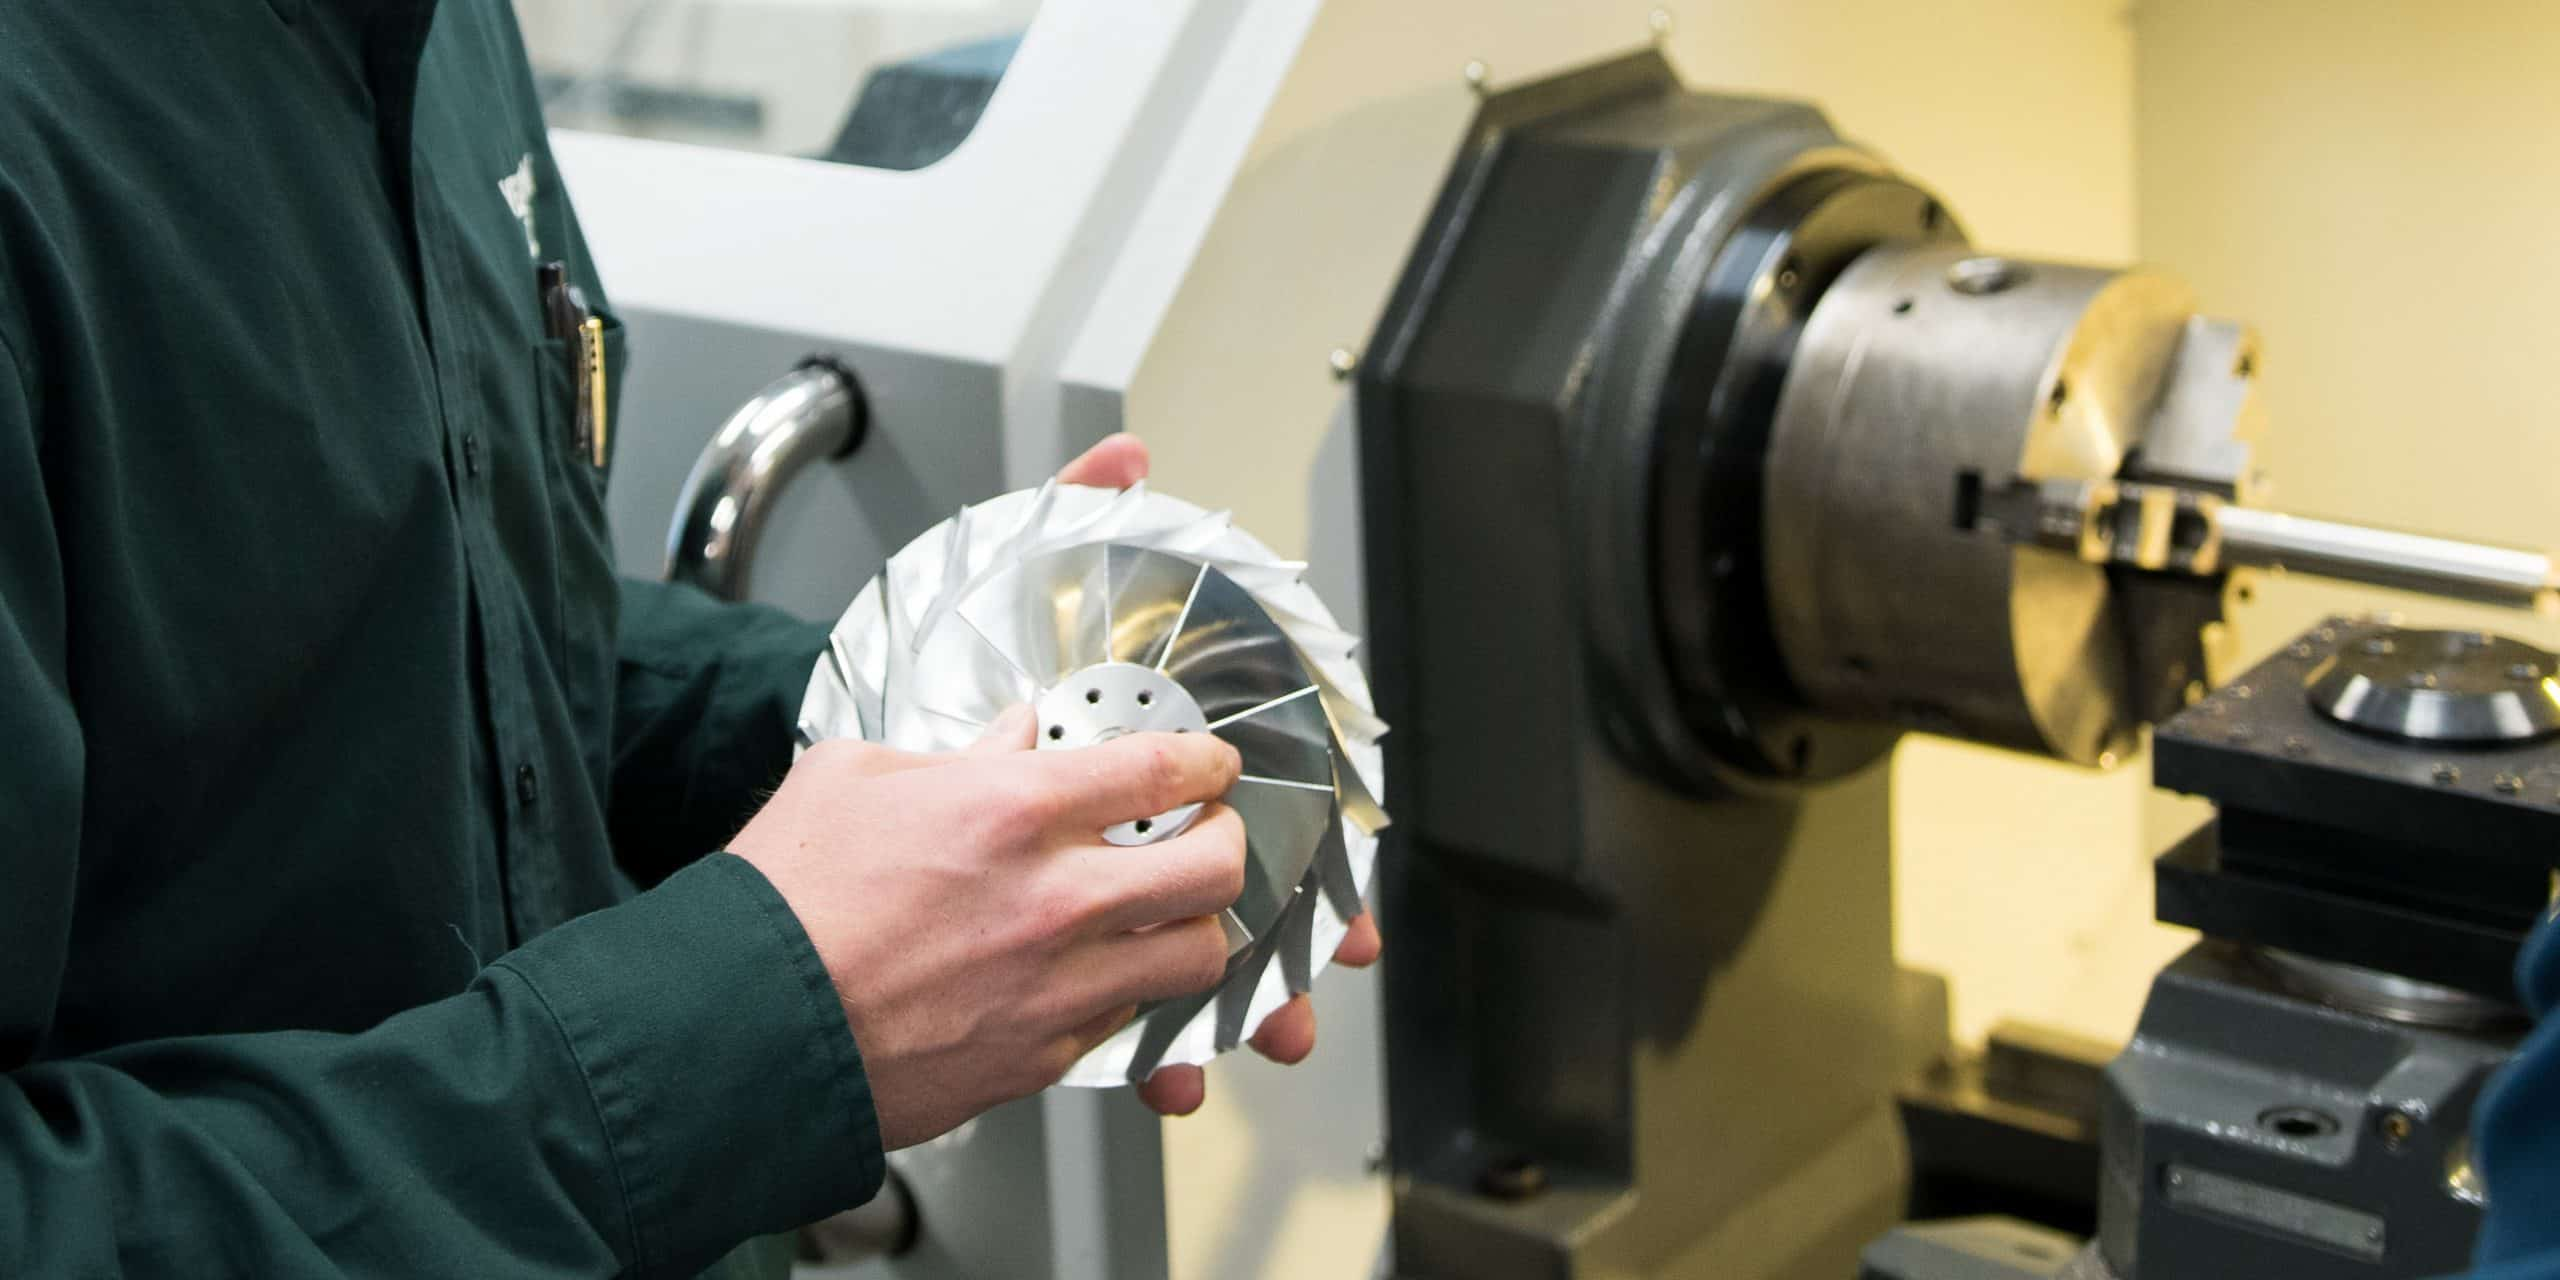 A machined part made from the lathe machine in the background, hand holding part